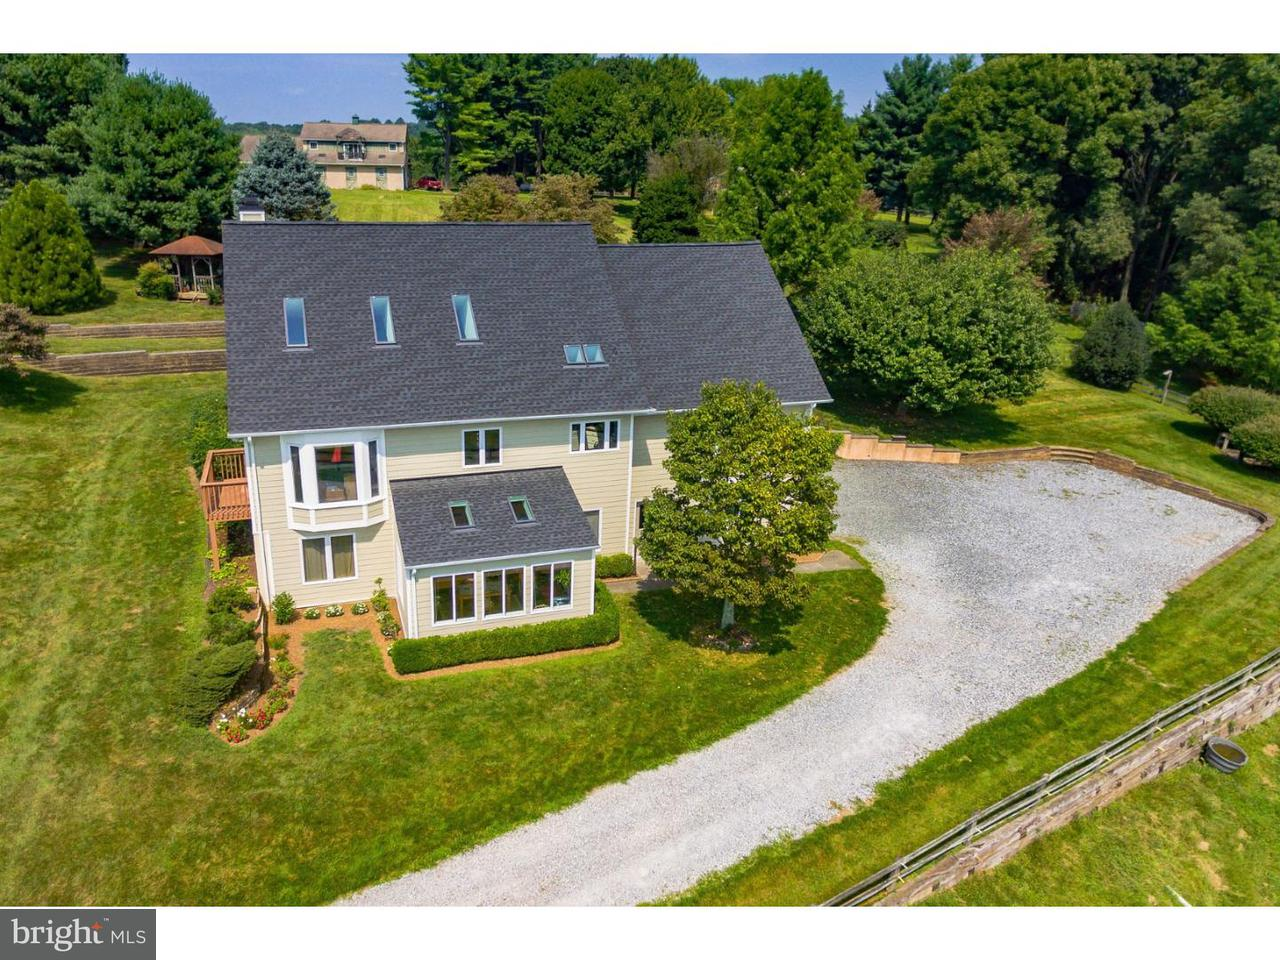 Single Family Home for Sale at 8 SPRING LEA Lane Chester Springs, Pennsylvania 19425 United States